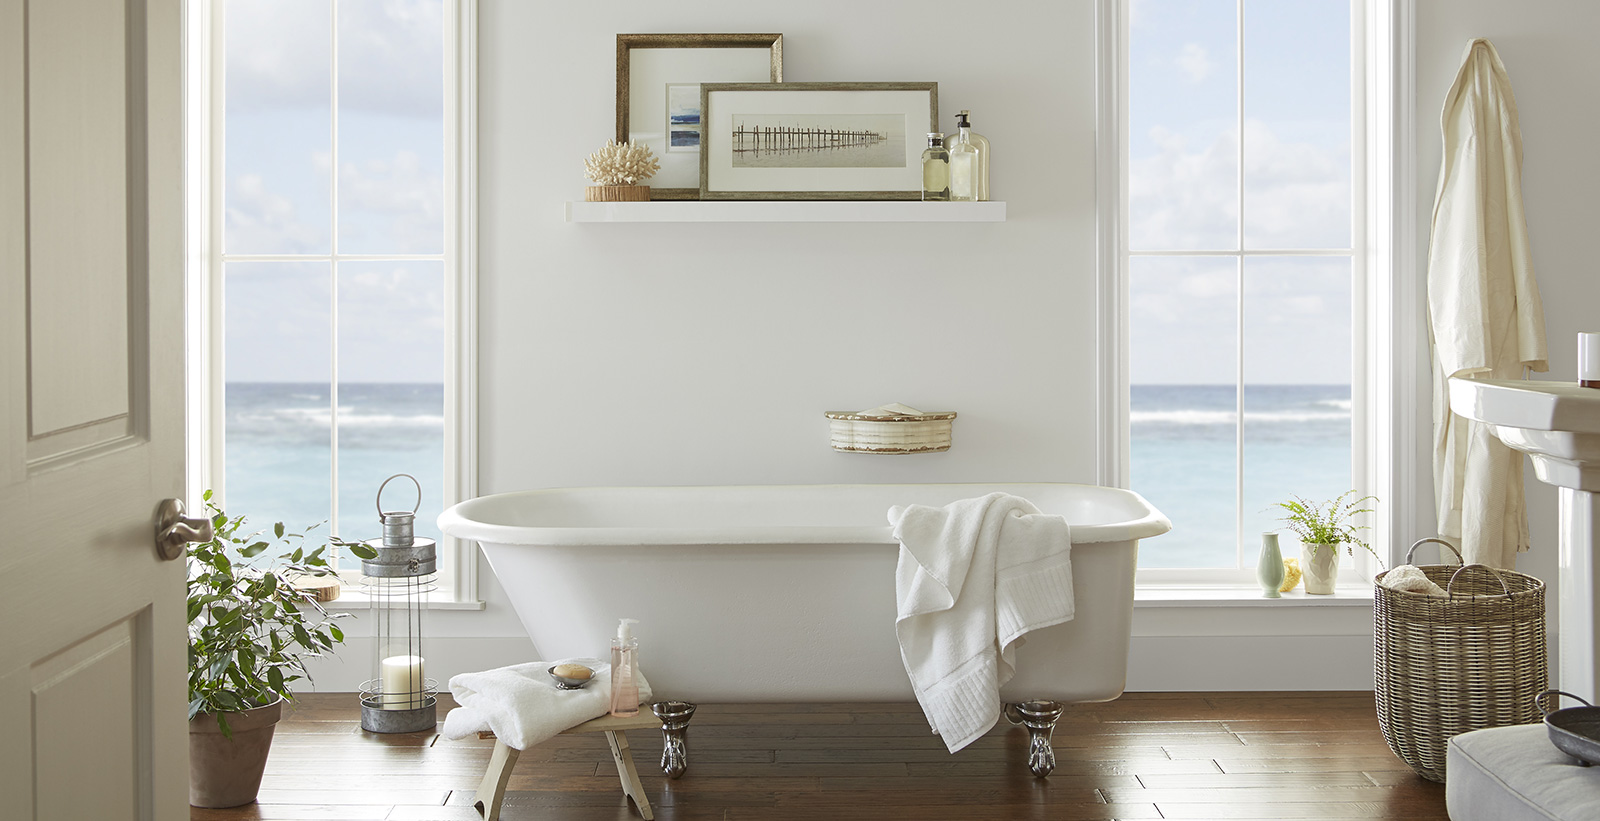 Casual styled bathroom with white walls, gray door, white trim, and seaside window view.